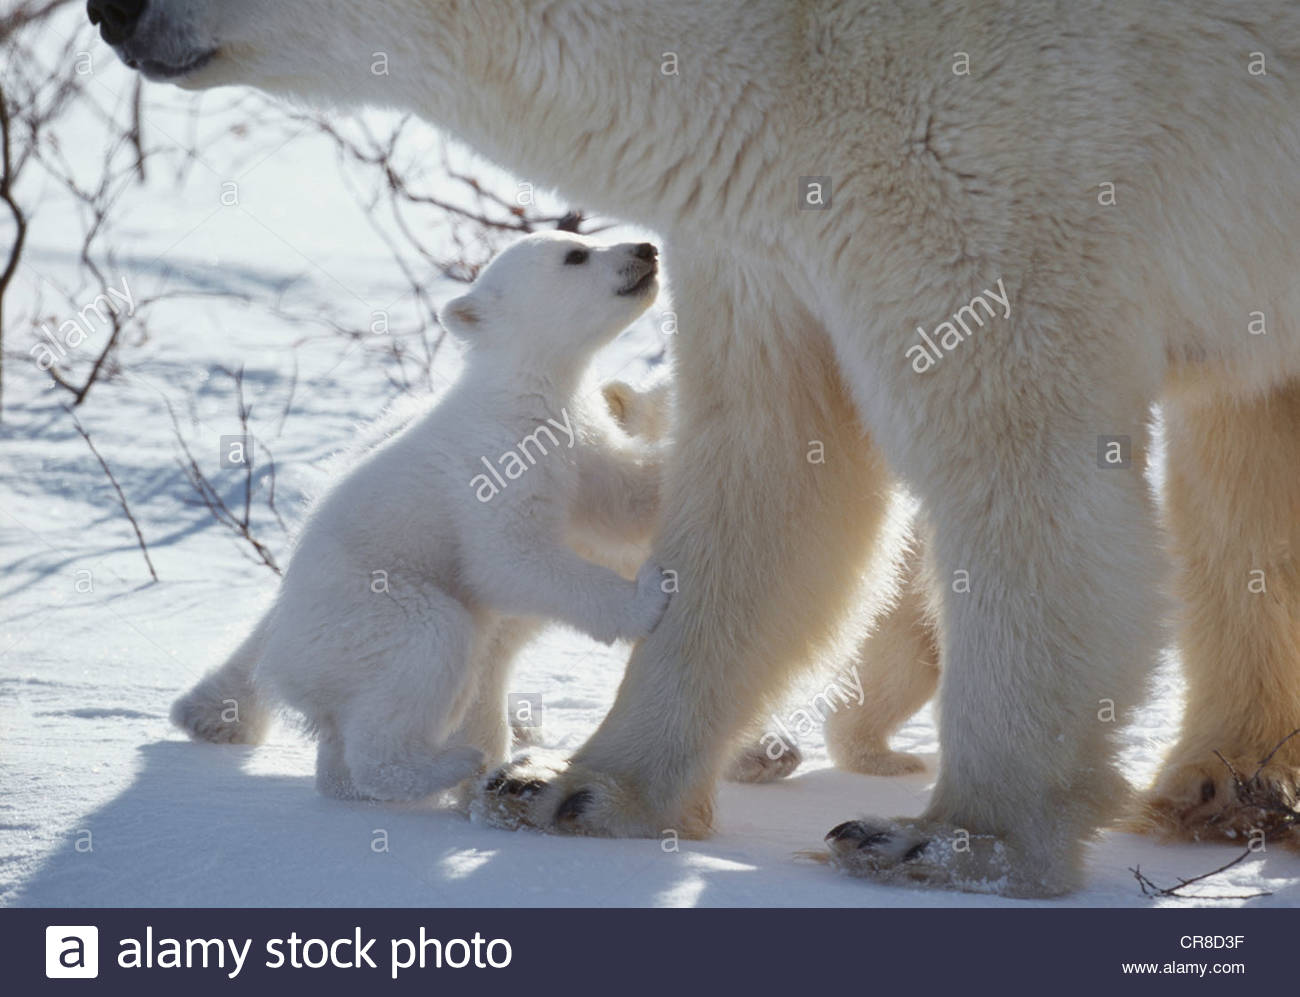 Polar bear cub begs from mother, Manitoba, Canada - Stock Image